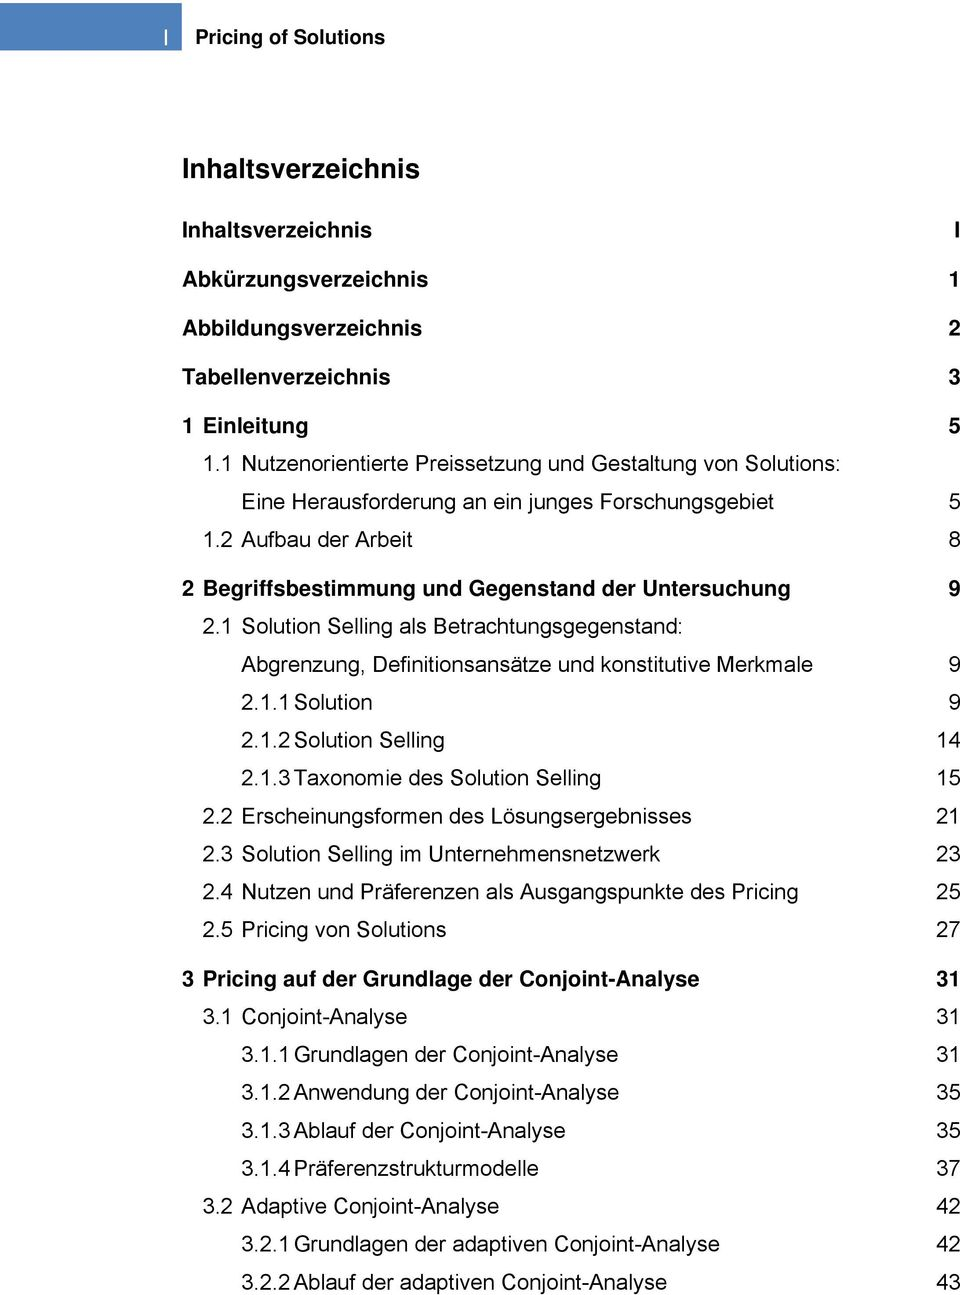 1 Solution Selling als Betrachtungsgegenstand: Abgrenzung, Definitionsansätze und konstitutive Merkmale 9 2.1.1 Solution 9 2.1.2 Solution Selling 14 2.1.3 Taxonomie des Solution Selling 15 2.